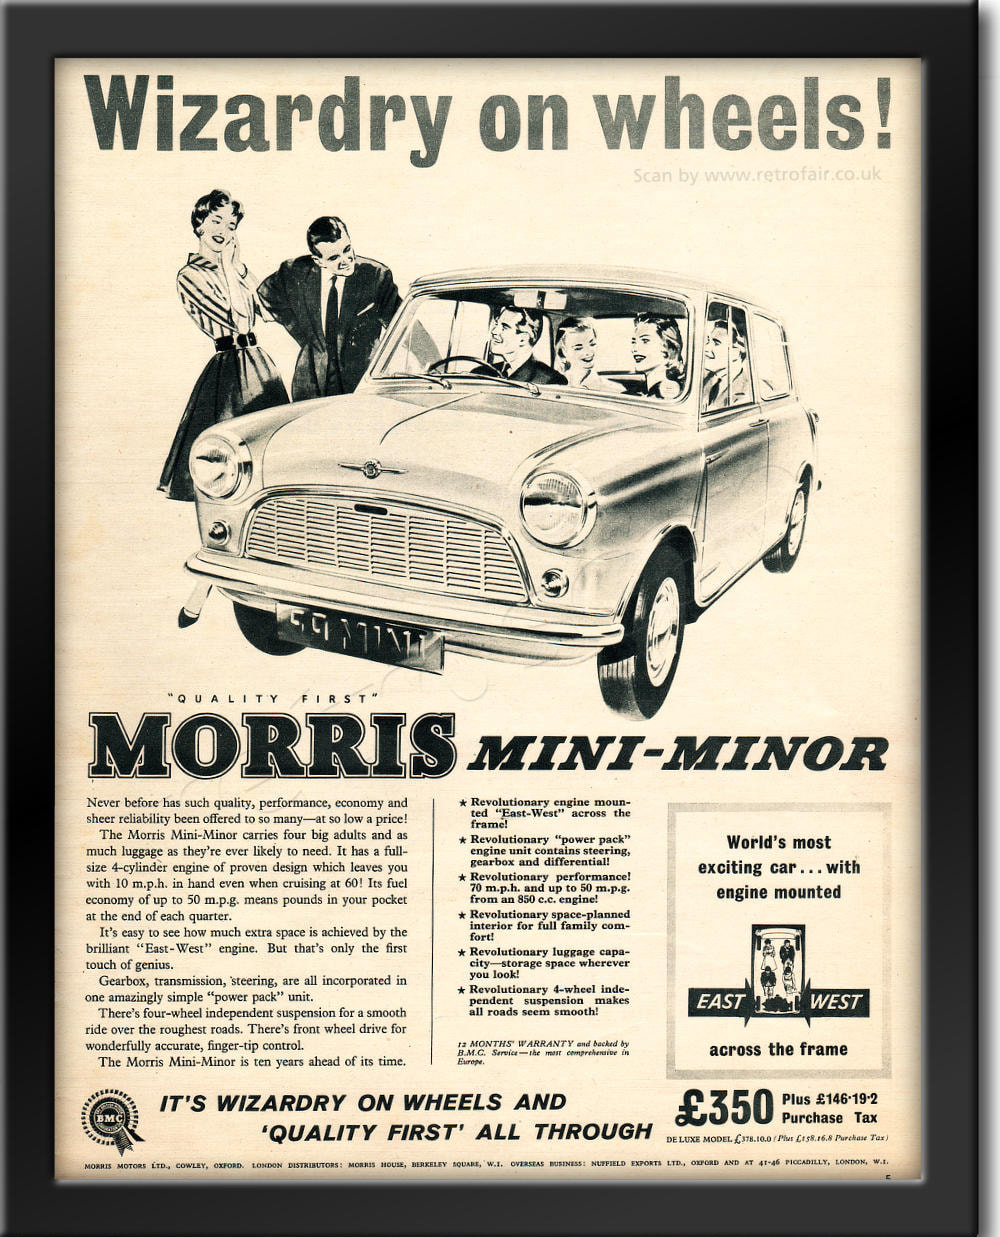 1959 Morris Mini - Minor - framed preview vintage ad